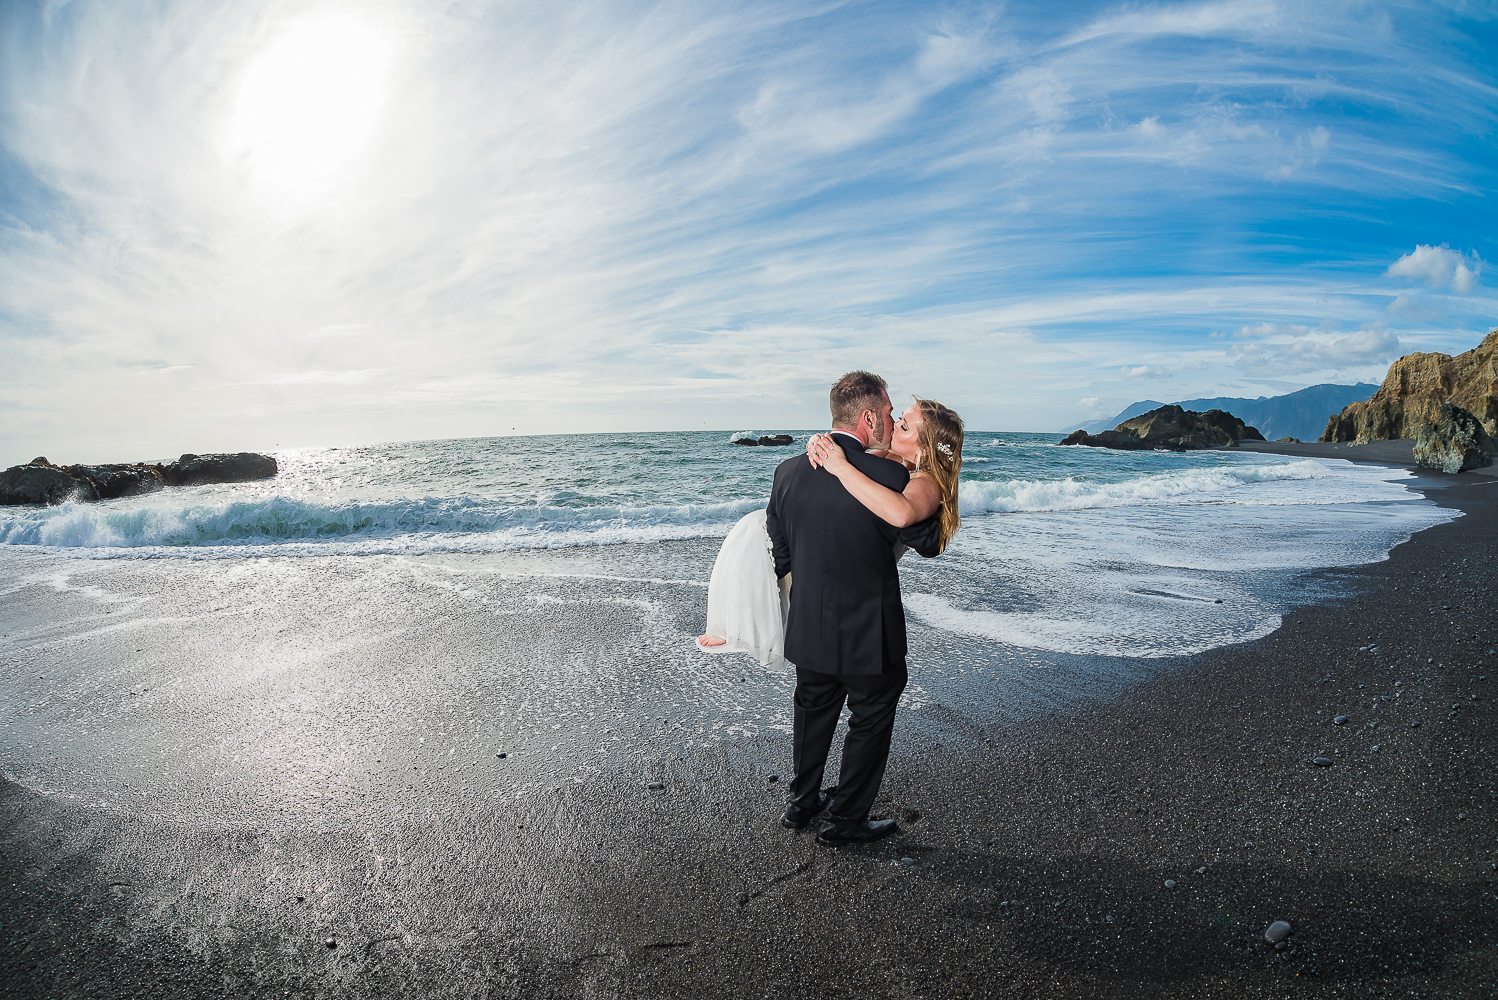 Shelter Cove-Intimate Destination beach Wedding-Parky's Pics Photography-Humboldt County_-40.jpg